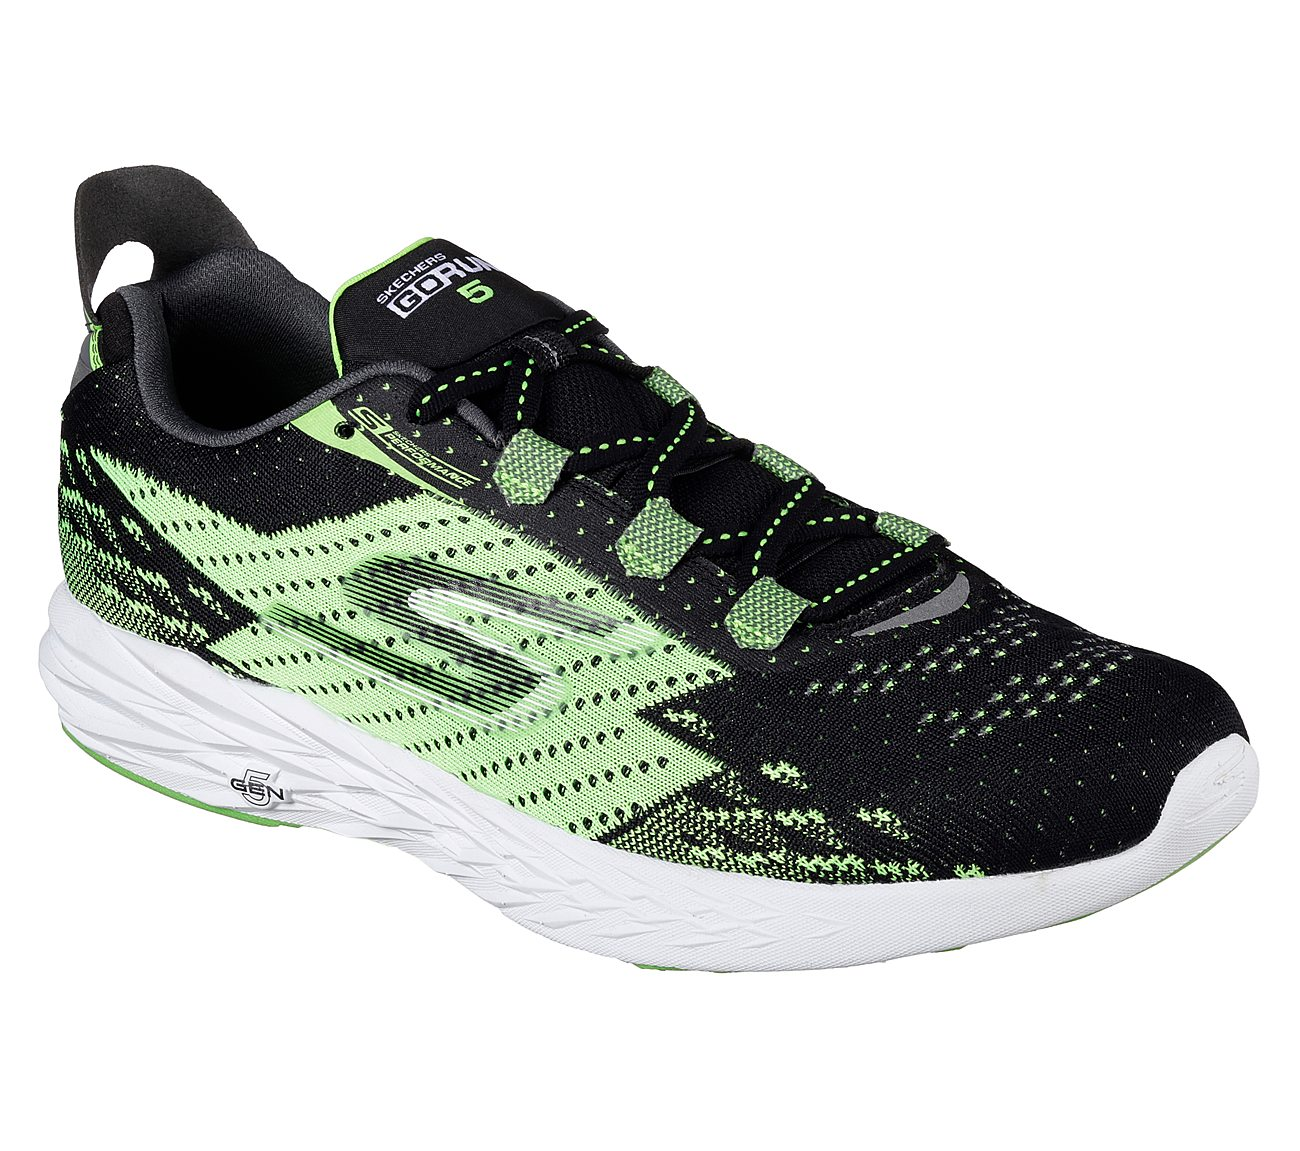 Buy SKECHERS Skechers GOrun 5 Skechers Performance Shoes ...